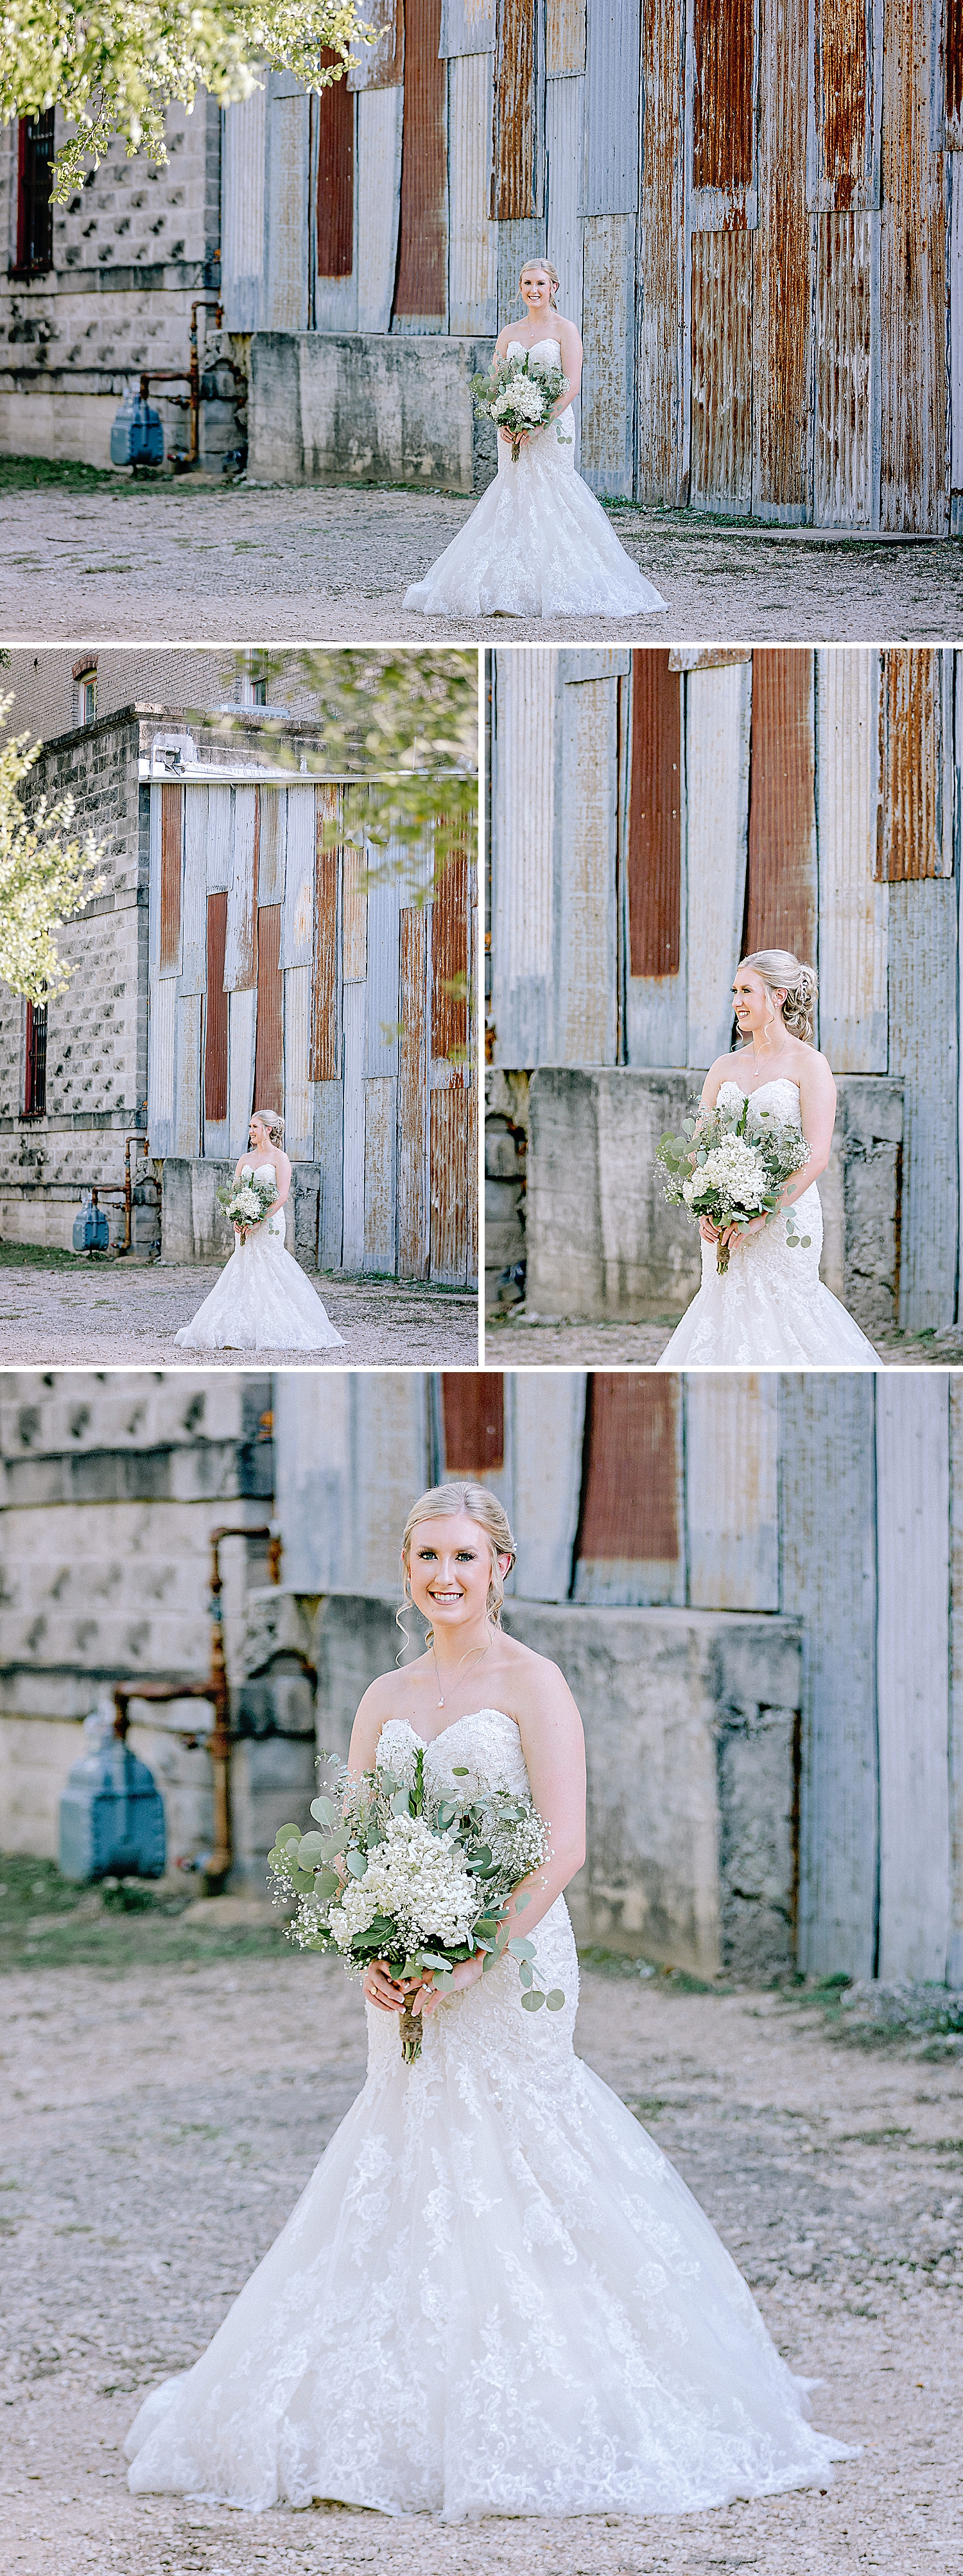 Carly-Barton-Photography-Bridal-Photos-Gruene-Rustic-New-Braunfels-Wedding-Photographer_0009.jpg